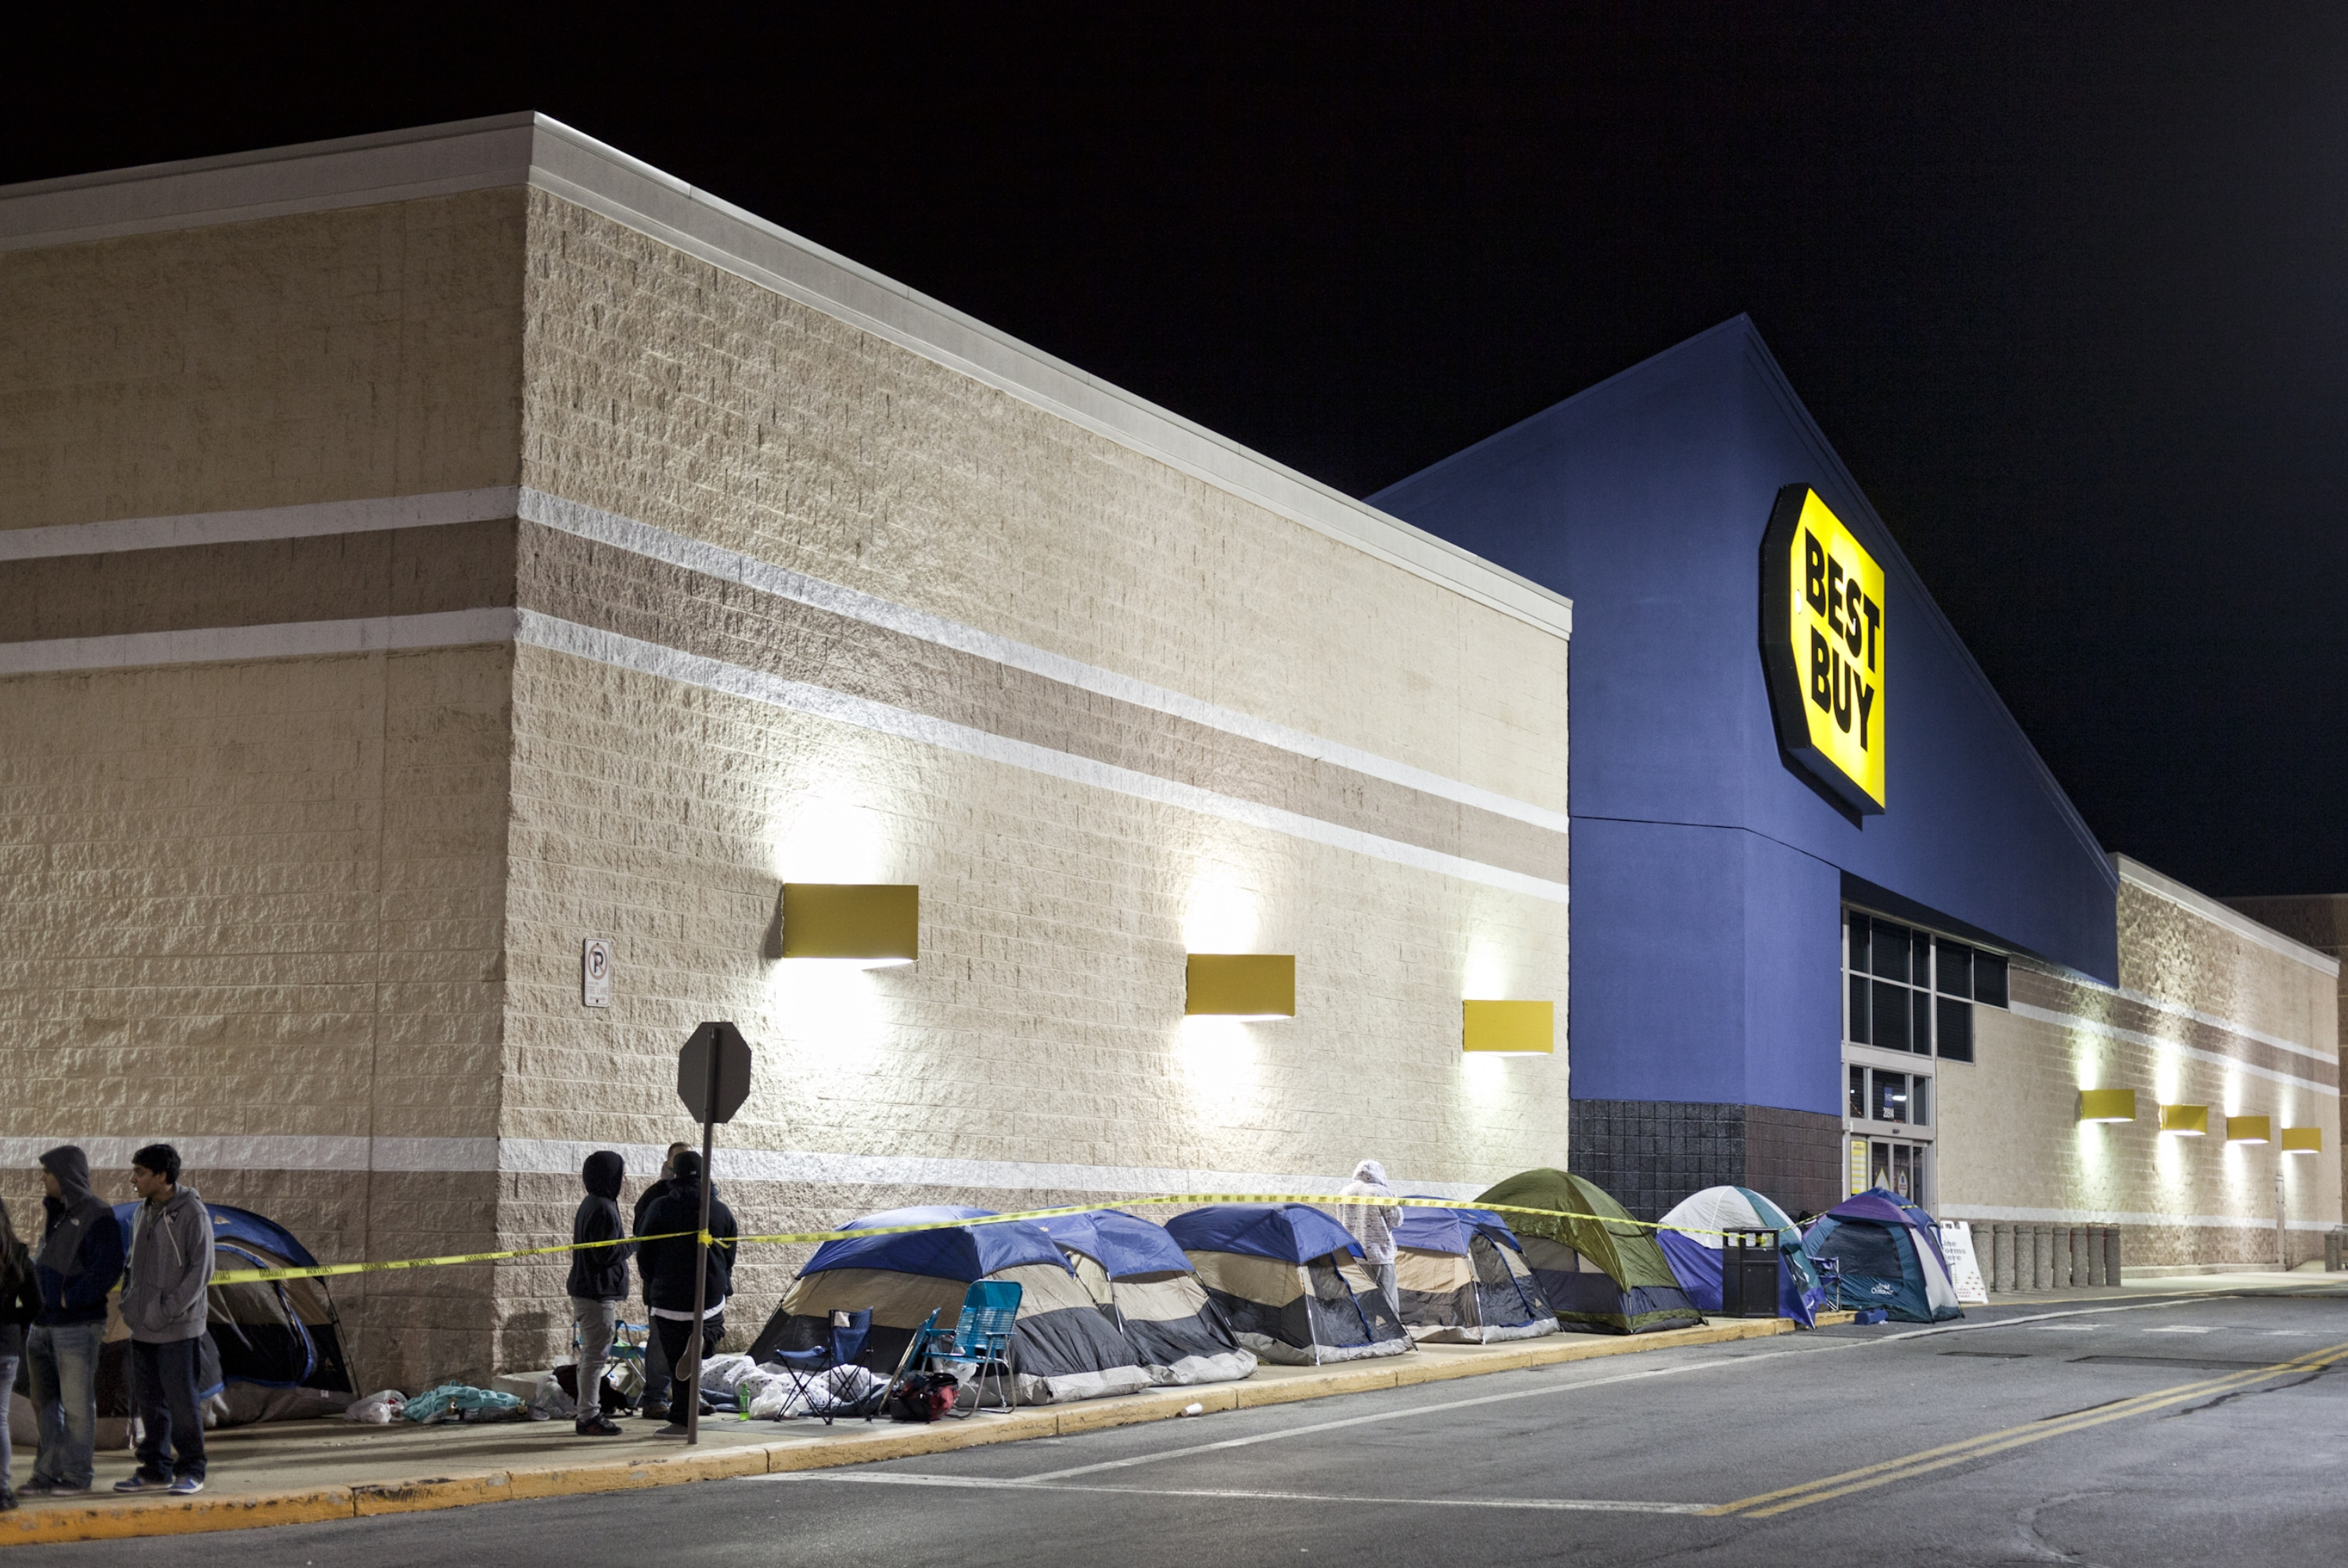 Camping In Line For Black Friday Shopping 11 Essential Supplies You Ll Need